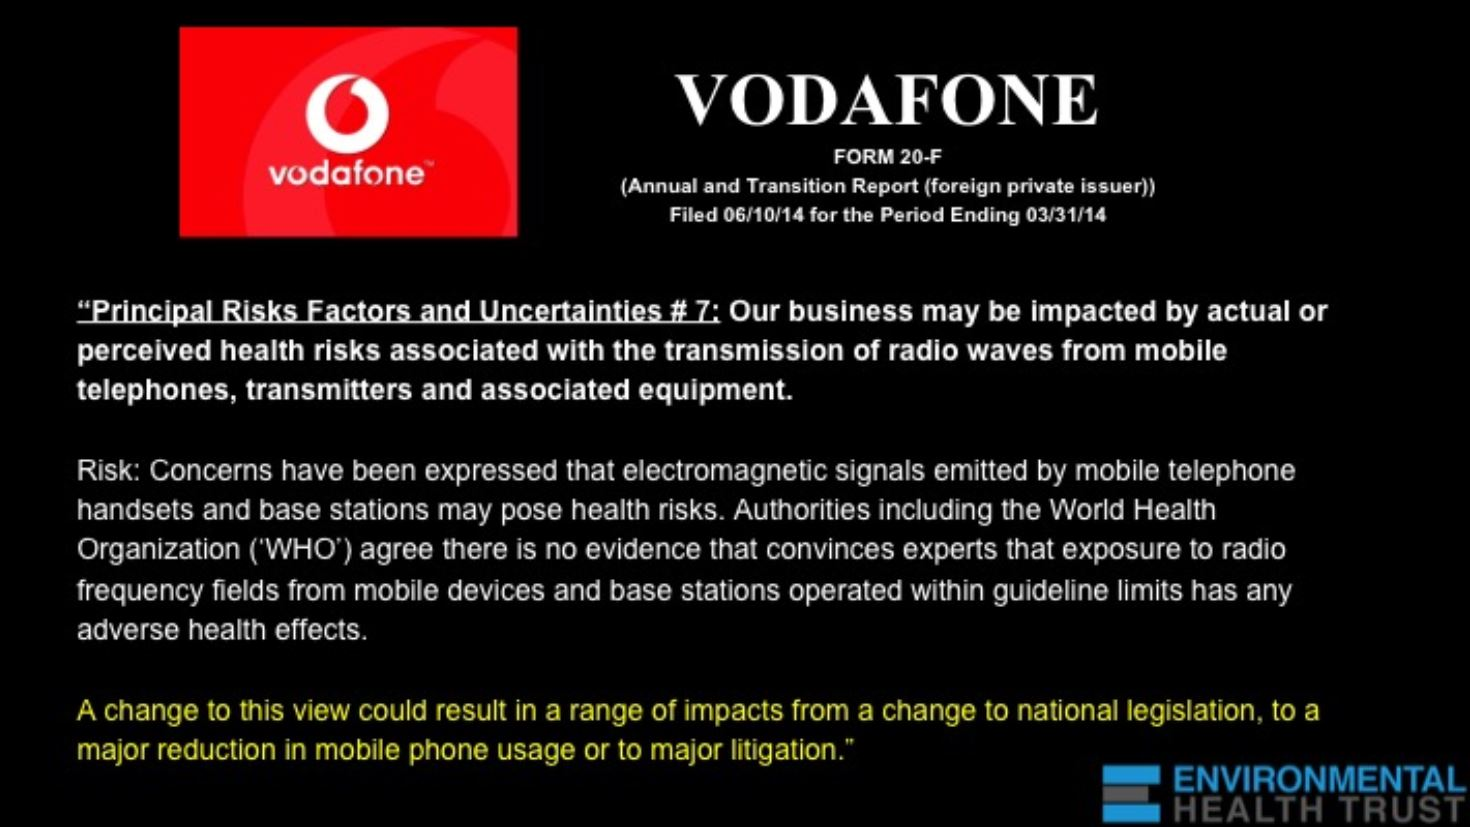 vodafone-court-defeat-could-make-way-for-legal-challenges-by-landowners-who-host-5g-phone-masts-–-activist-post